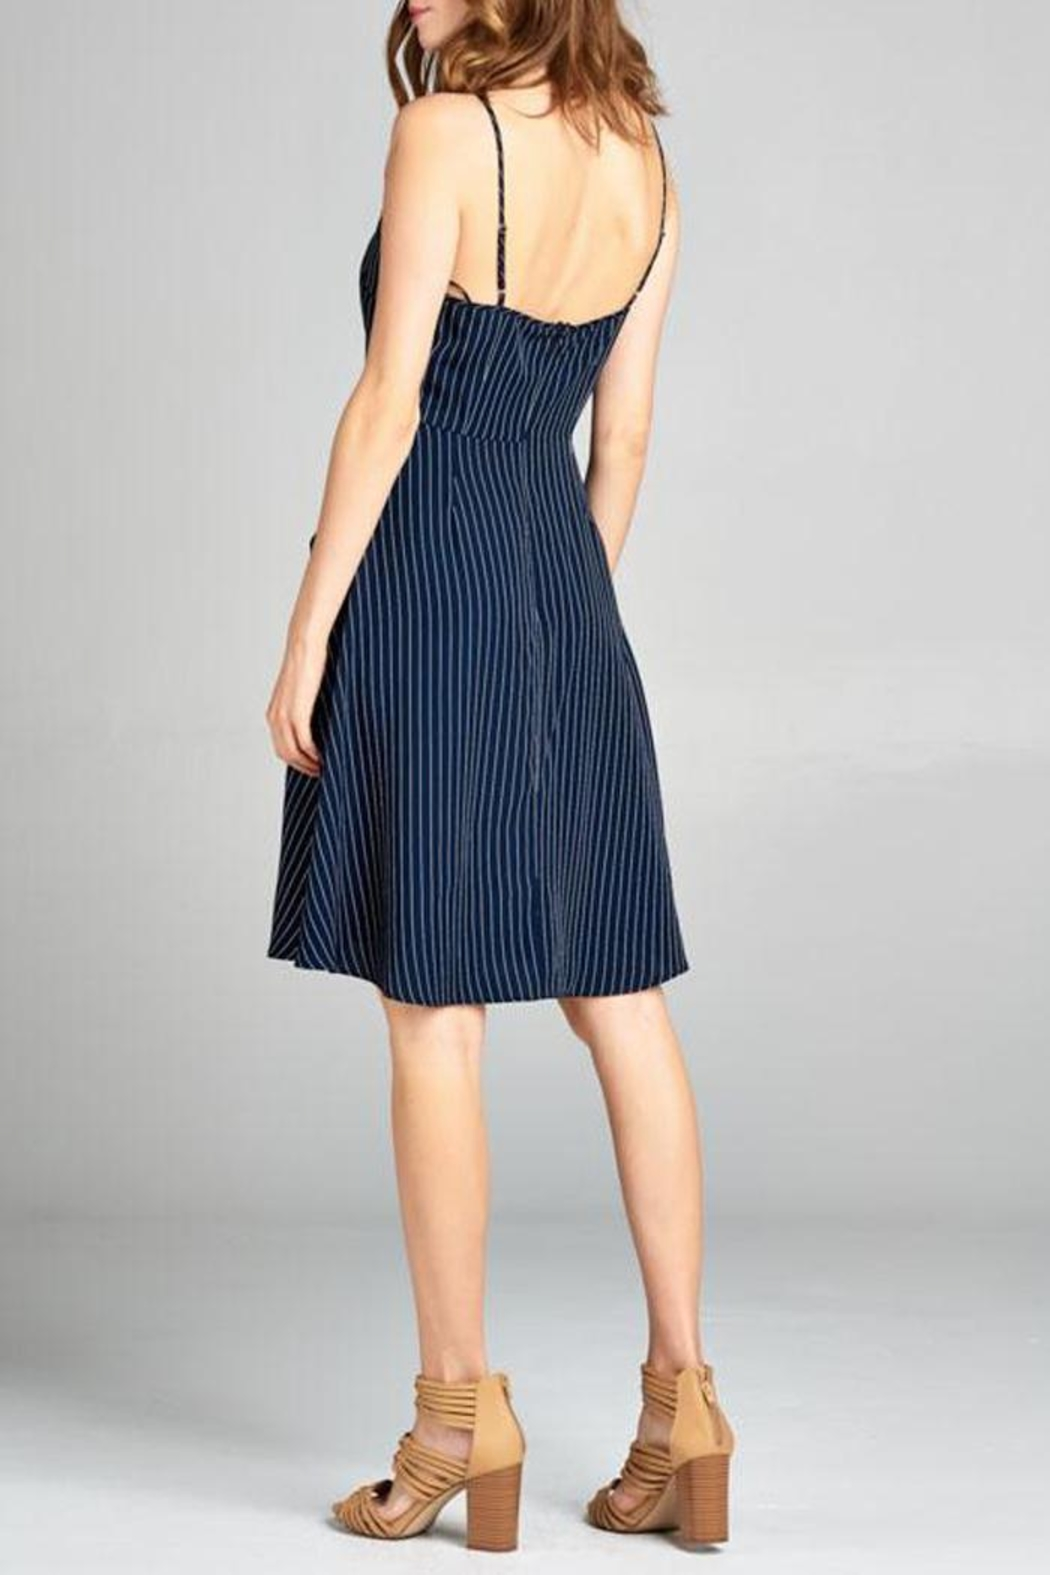 Tresics Pippa Fit-And-Flare Dress - Side Cropped Image